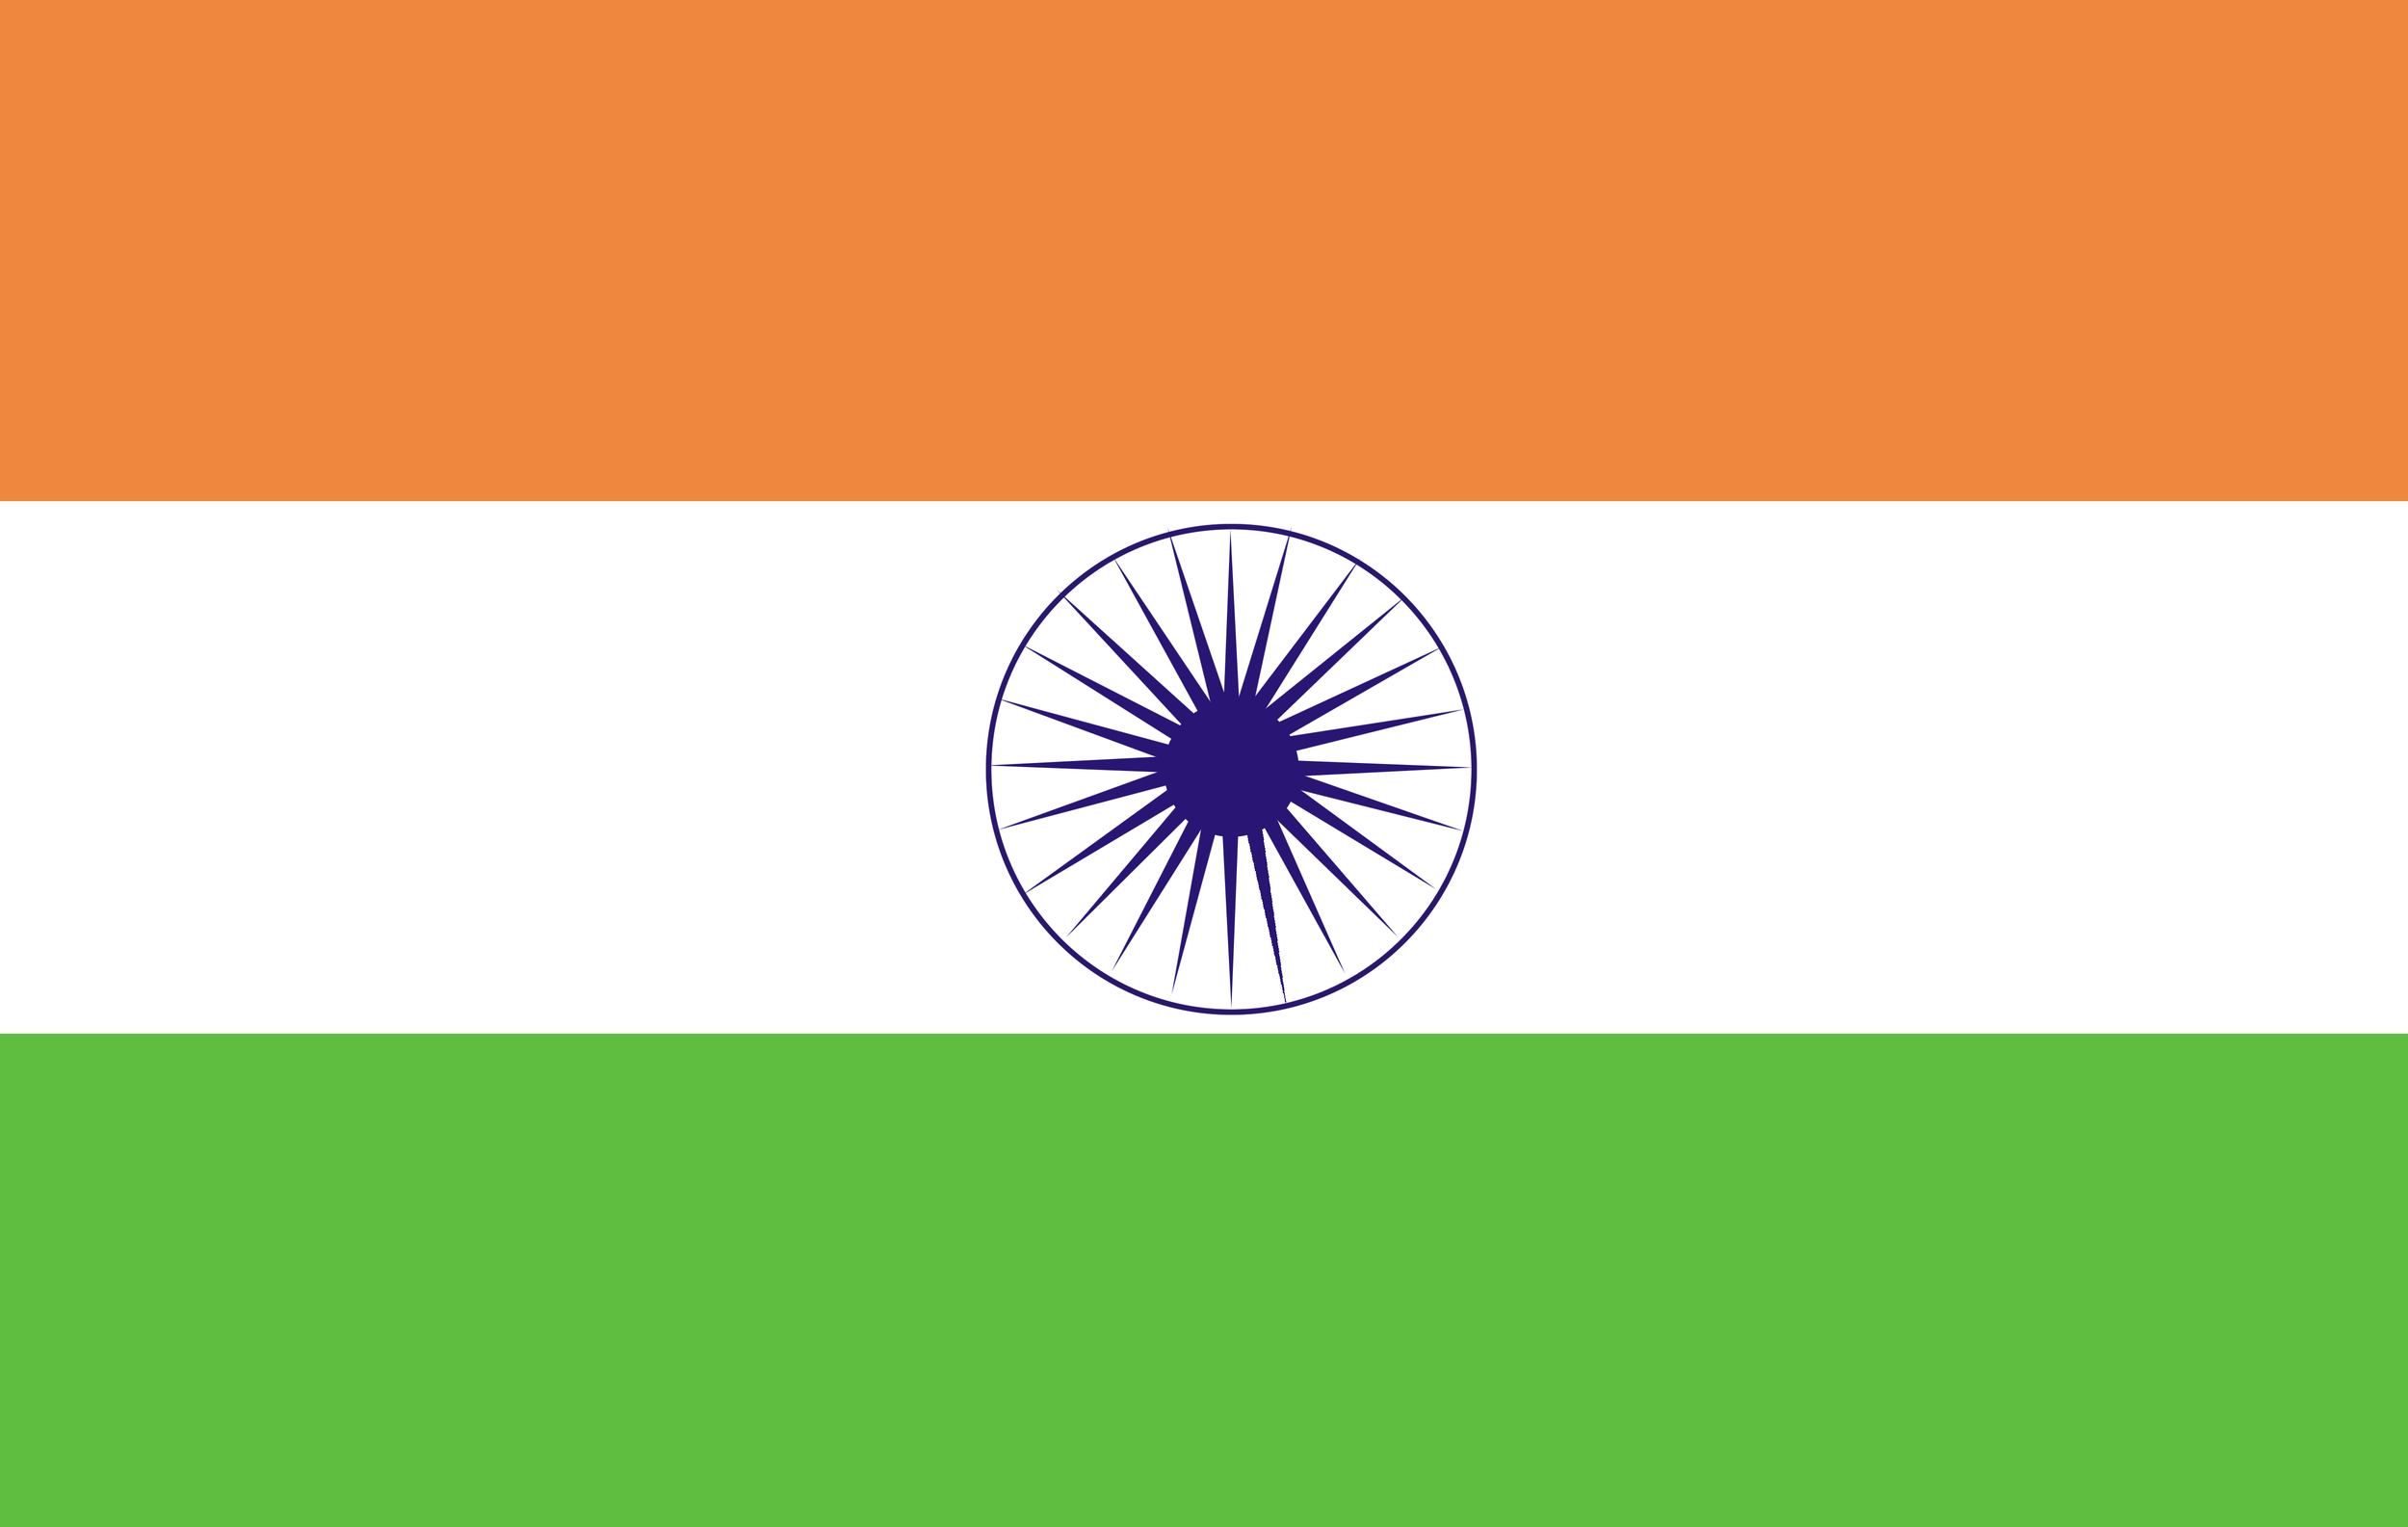 "The central symbol in the Indian flag is the   Ashoka Chakra, itself  a depiction of the   dharmachakra  ; represented with 24 spokes. According to Wikipedia, ""When   Buddha   achieved   nirvana   (Nibbana) at Gaya, he came to Sarnath on the outskirts of Varanasi. There he found his five disciples (panch vargiya Bhikshu) Ashwajeet, Mahanaam, Kaundinya, Bhadrak and Kashyap, who had earlier abandoned him. He preached his first sermon to them, thereby promulgating the   Dharmachakra  . This is the motif taken up by Ashoka and portrayed on top of his pillars."""